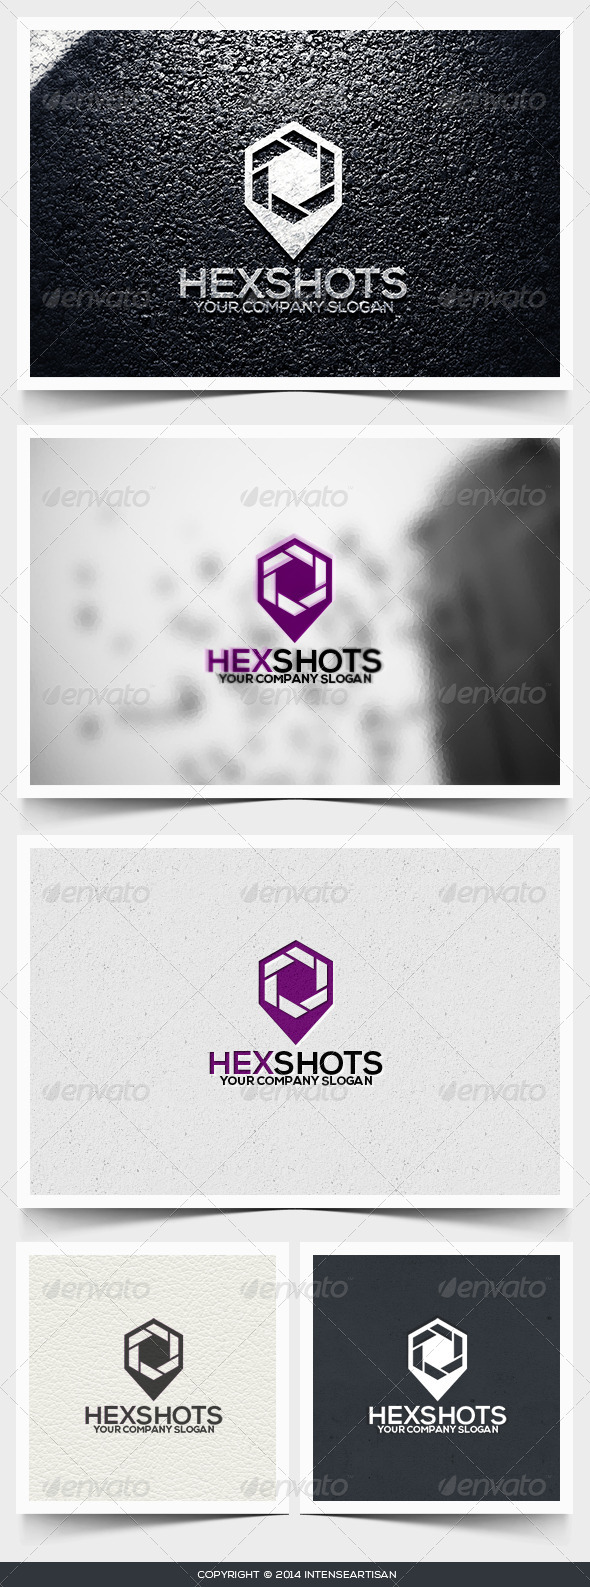 GraphicRiver Hexshots Logo Template 6549419